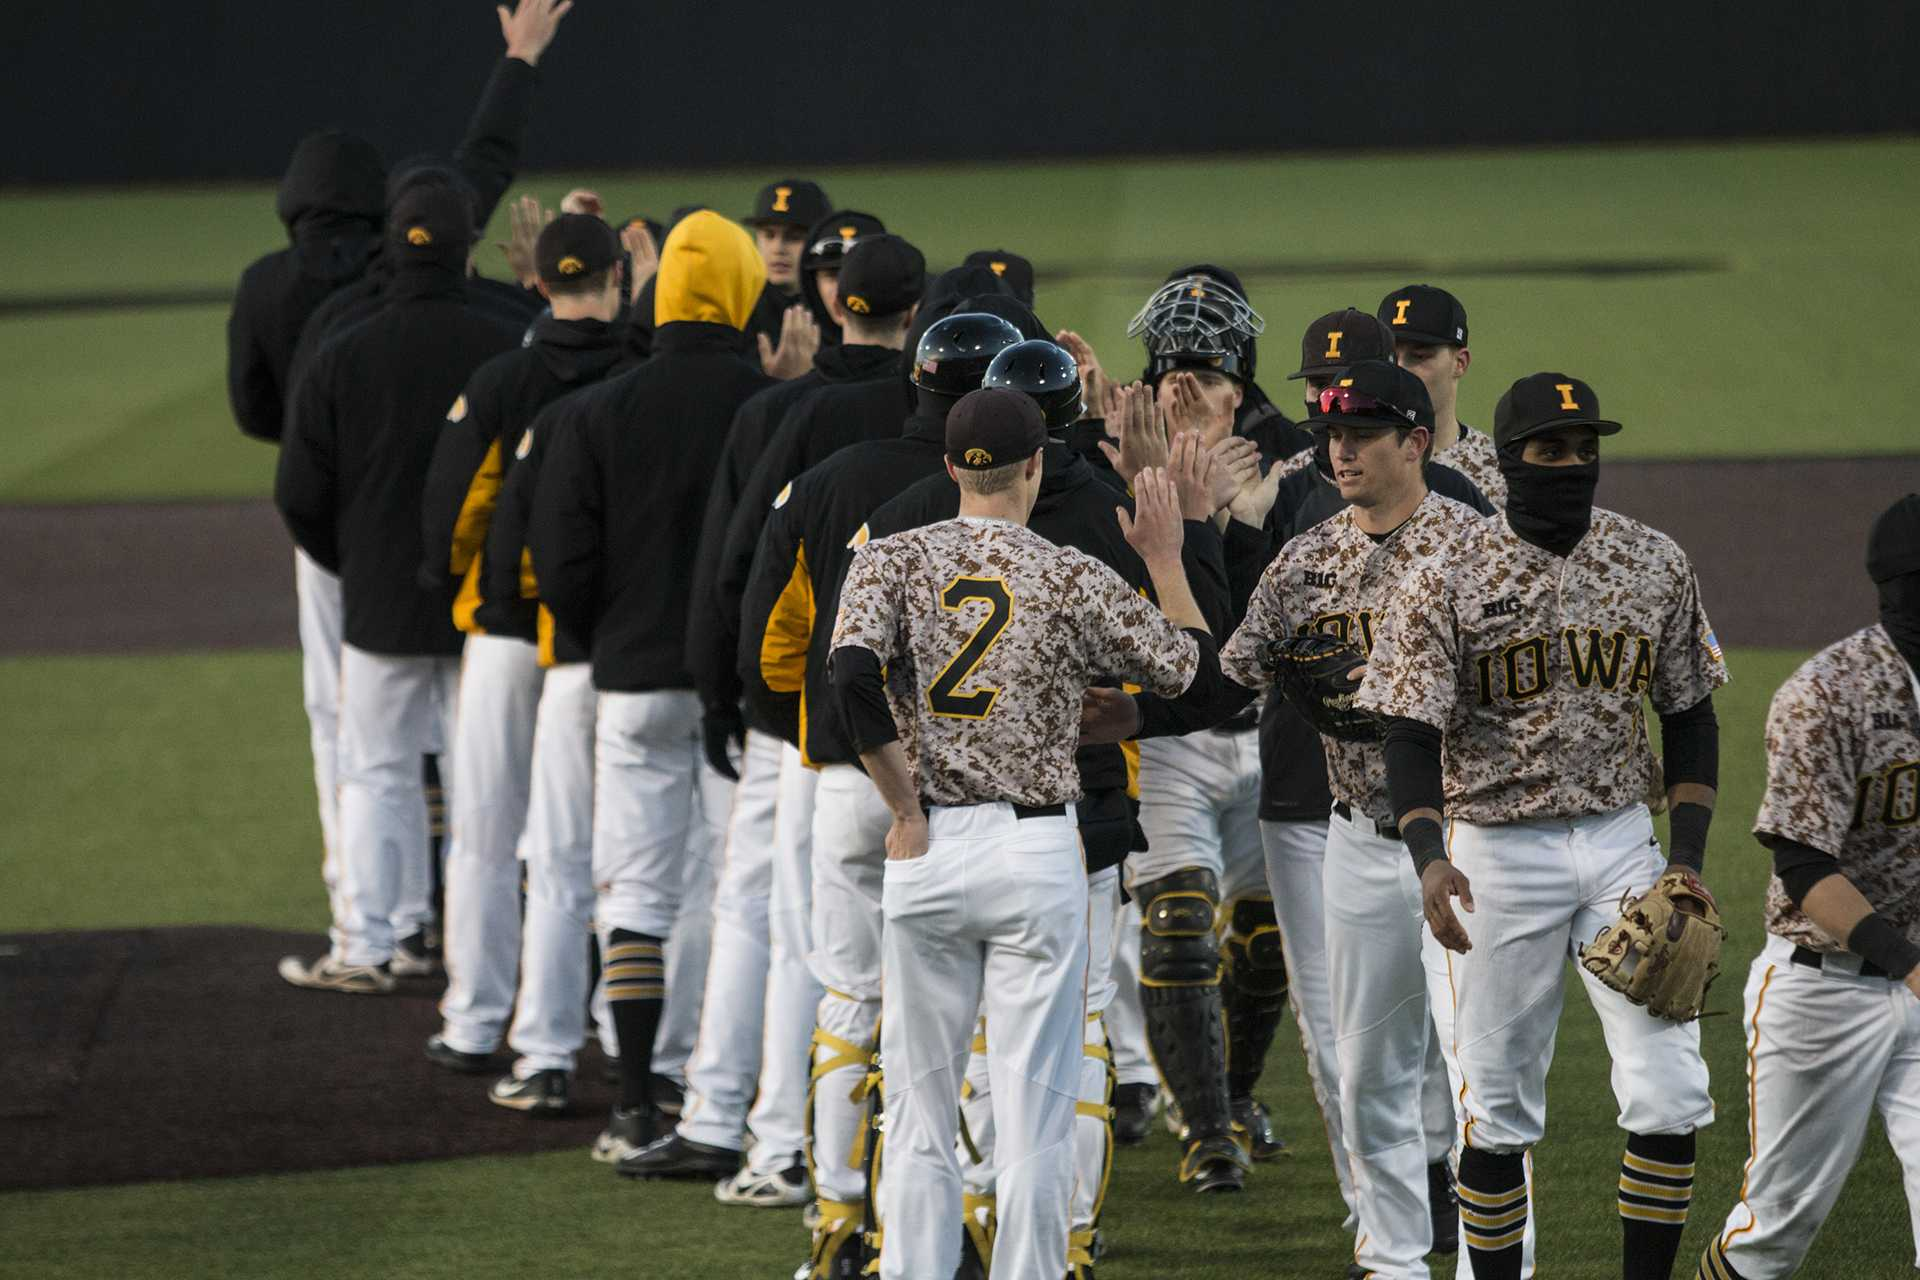 Iowa players congratulate each other during men's baseball Iowa vs. OSU at Duane Banks Field on April 7, 2018. The Hawkeyes defeated the Buckeyes 9-5. (Katina Zentz/The Daily Iowan)